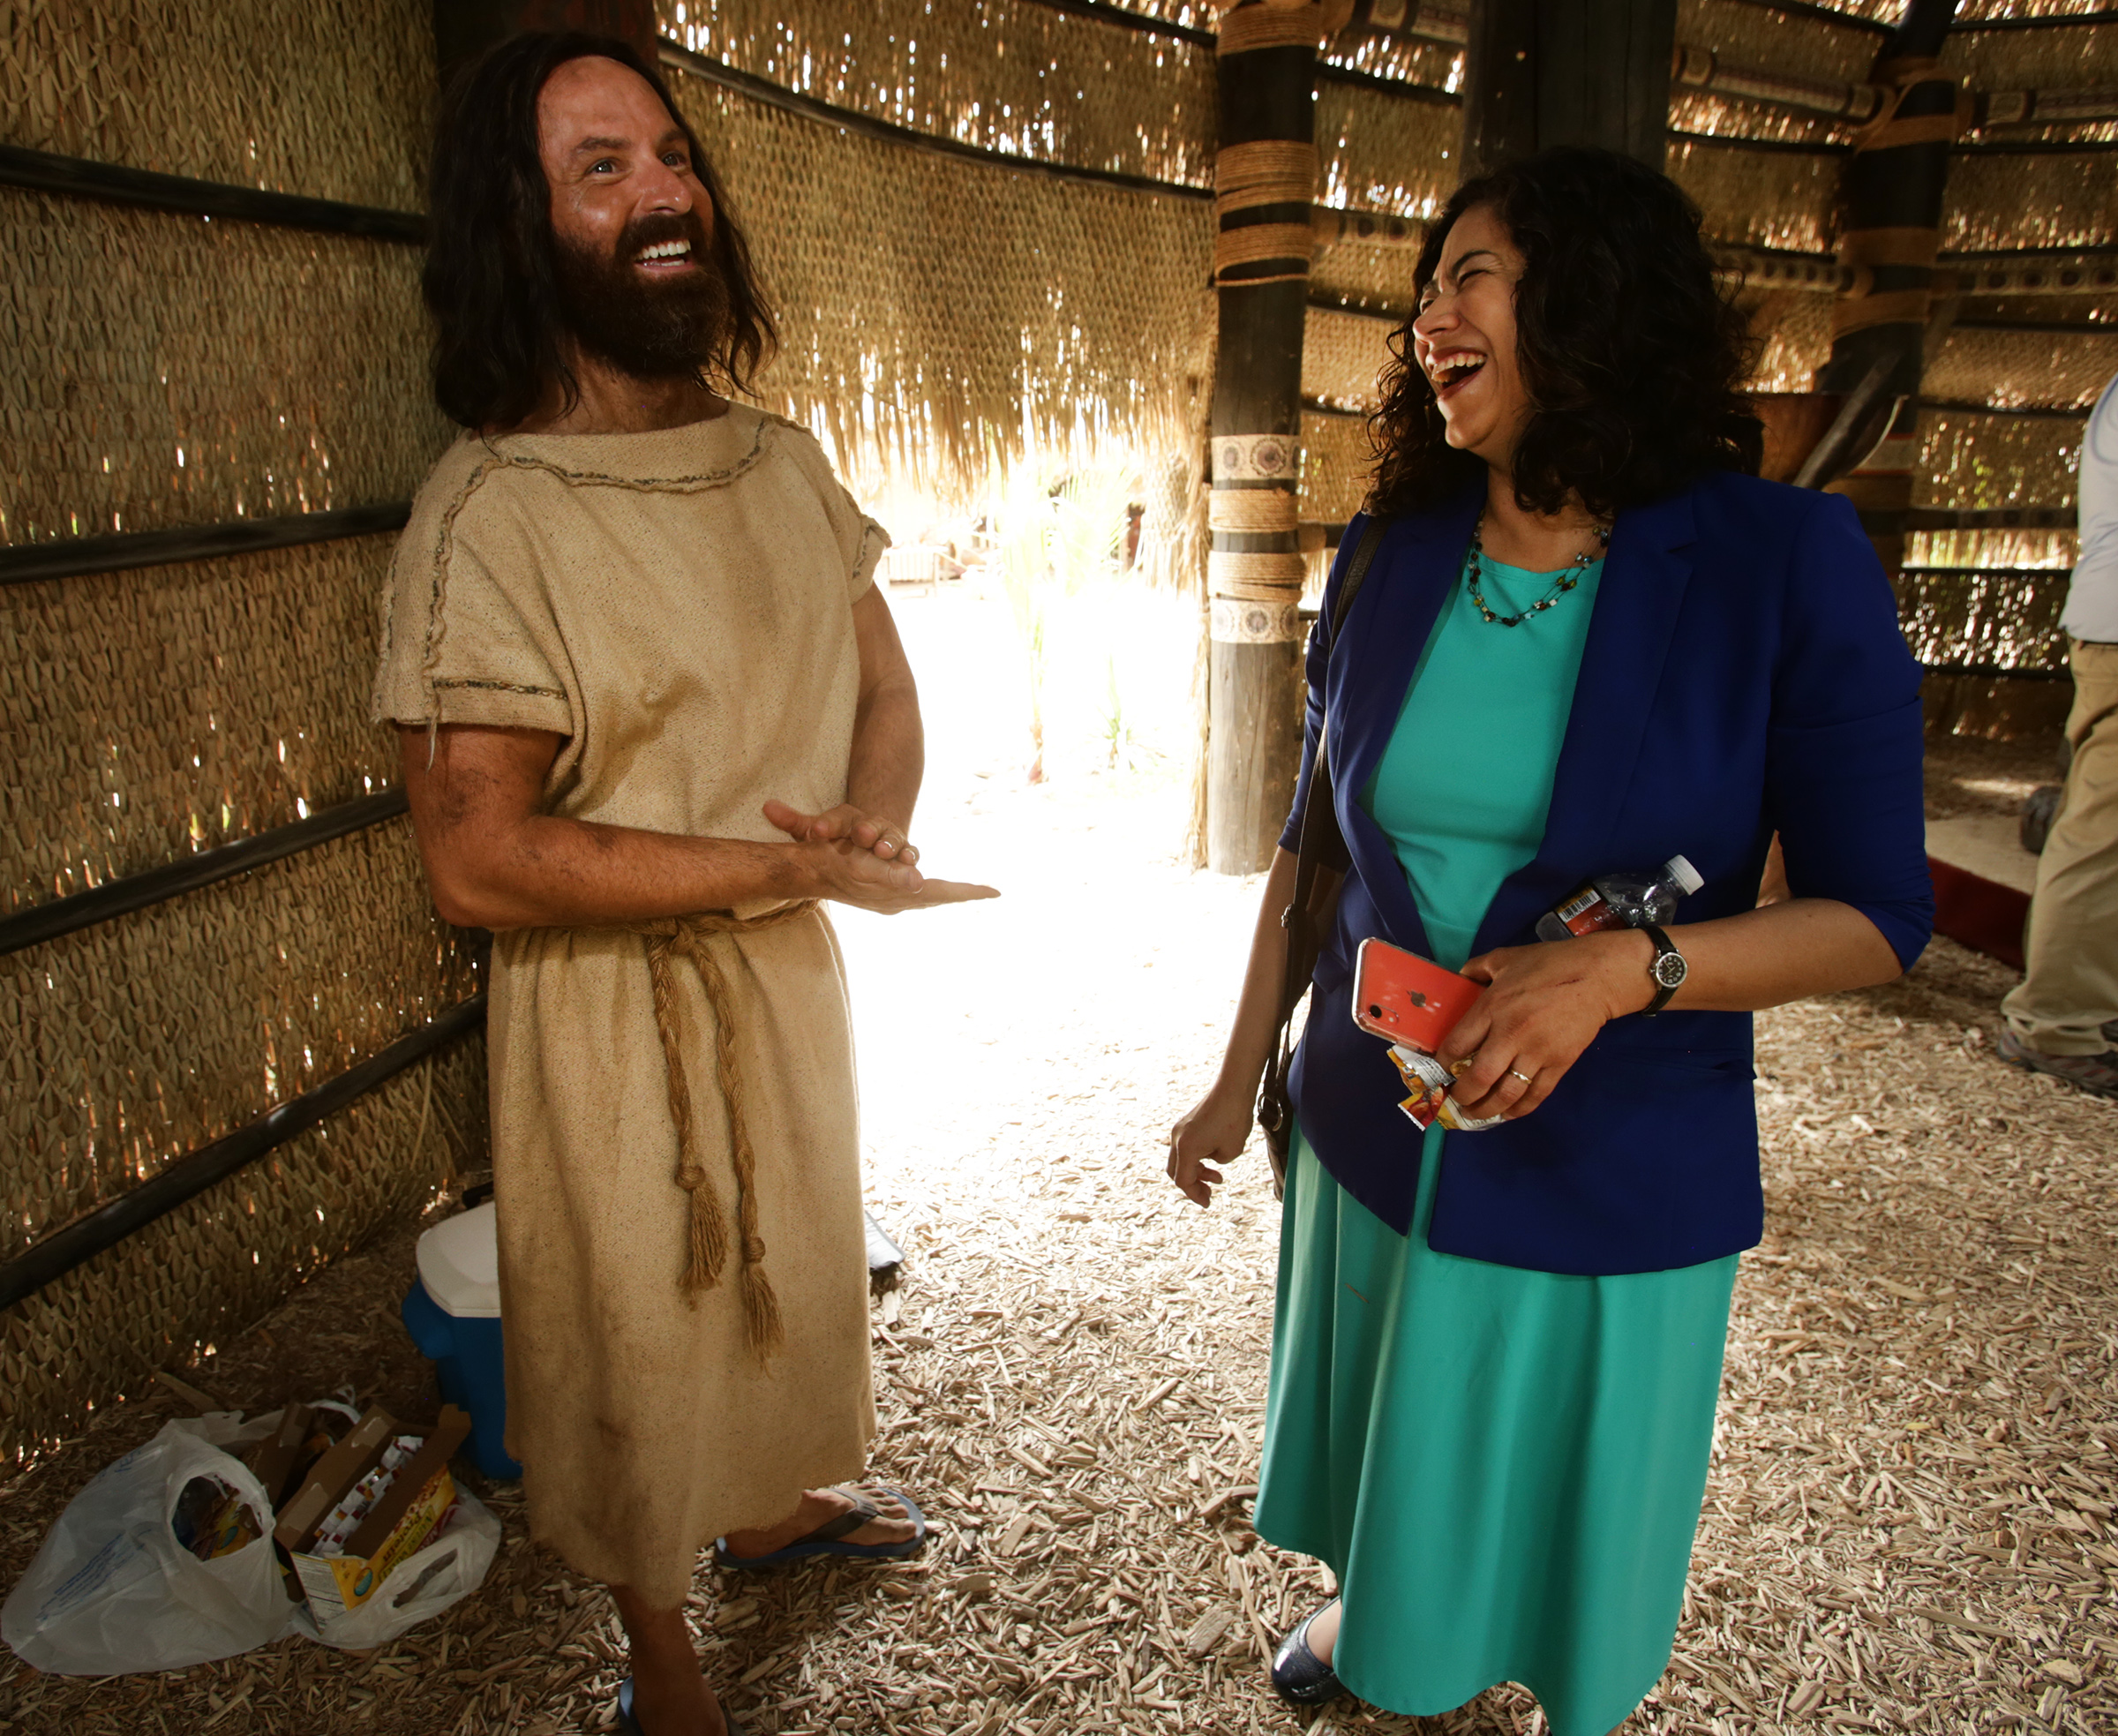 Ryan Wood, who plays the part of Abinadi, talks with Sister Reyna I. Aburto second counselor in the Relief Society general presidency of The Church of Jesus Christ of Latter-day Saints during a media day for the Book of Mormon videos series production in Provo, Utah, at the Motion Picture Studio on Tuesday, Sept. 3, 2019.